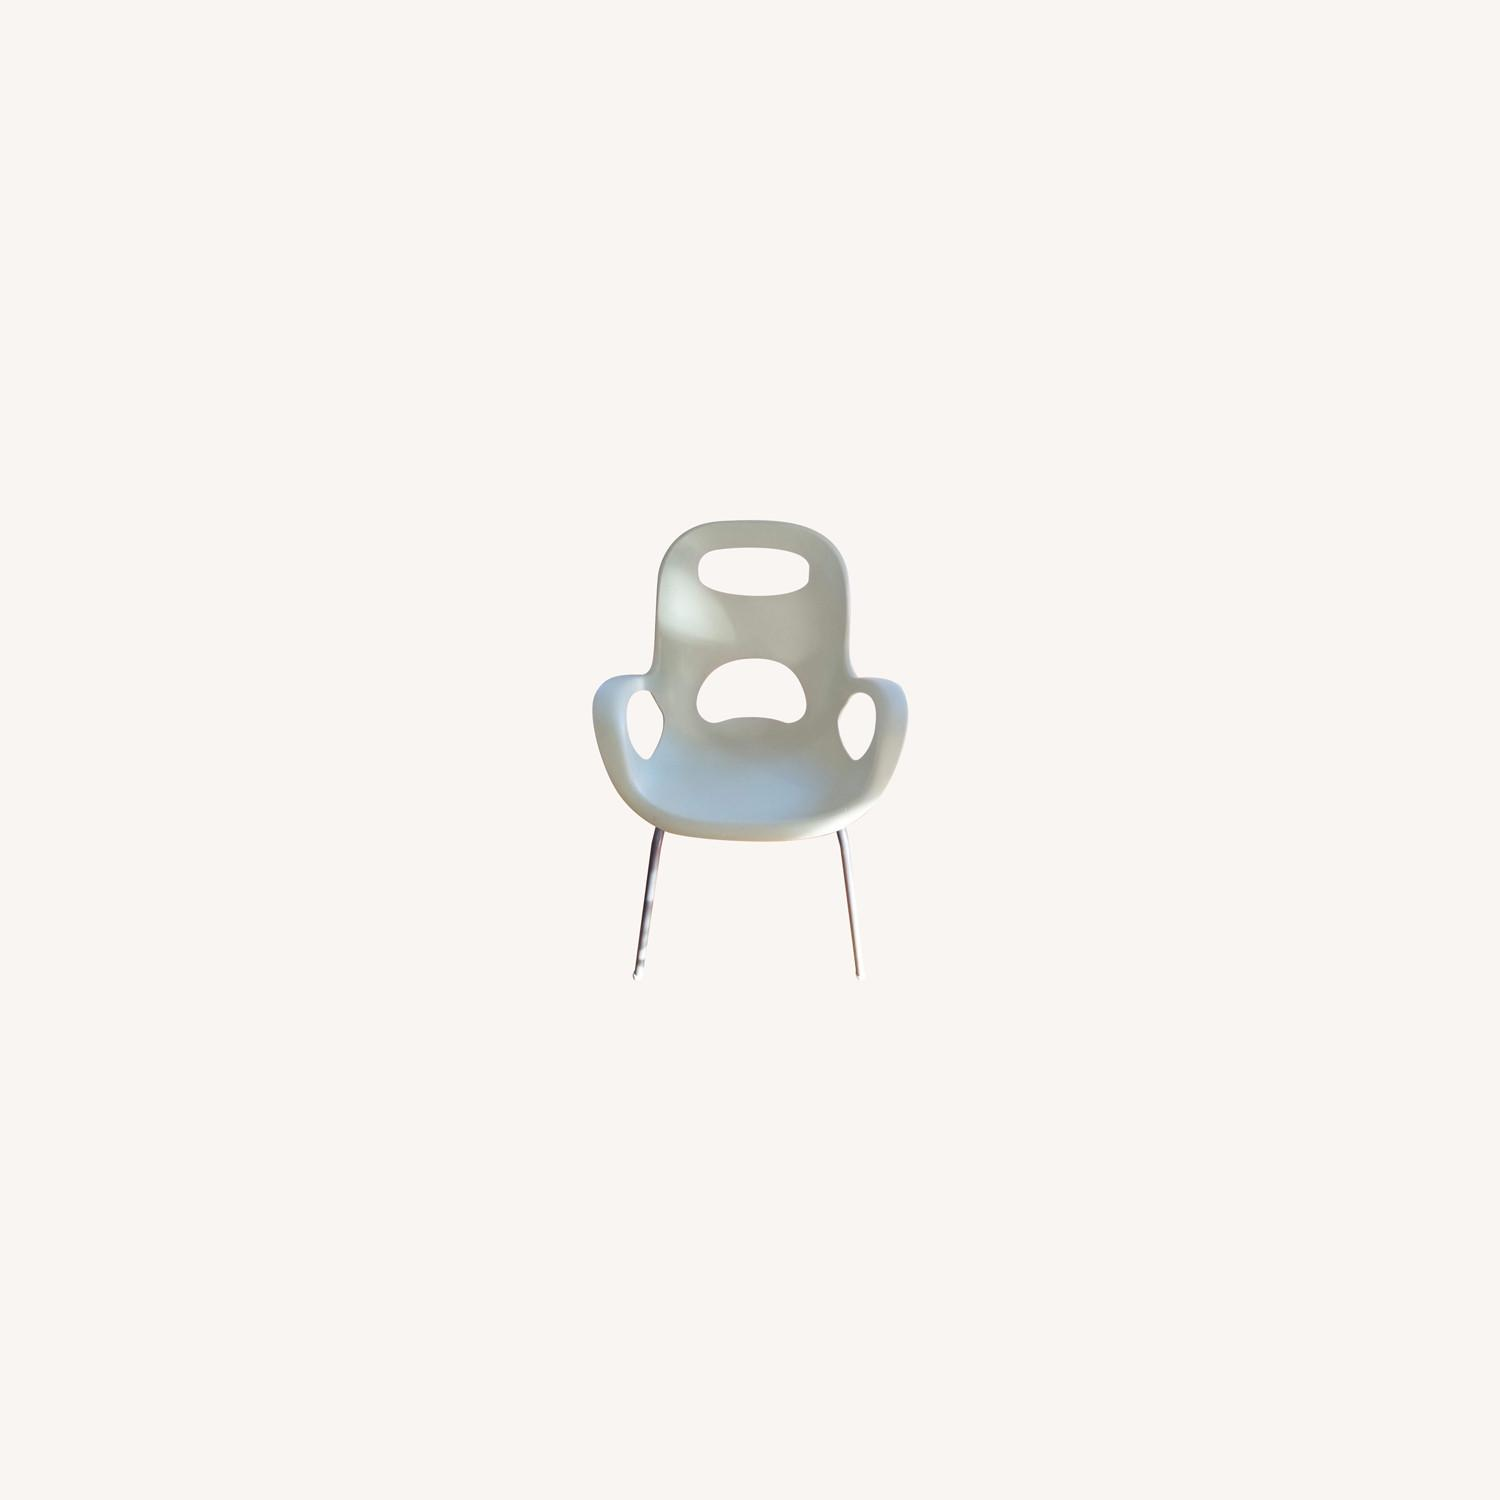 Umbra Oh Chair x 4 - image-17